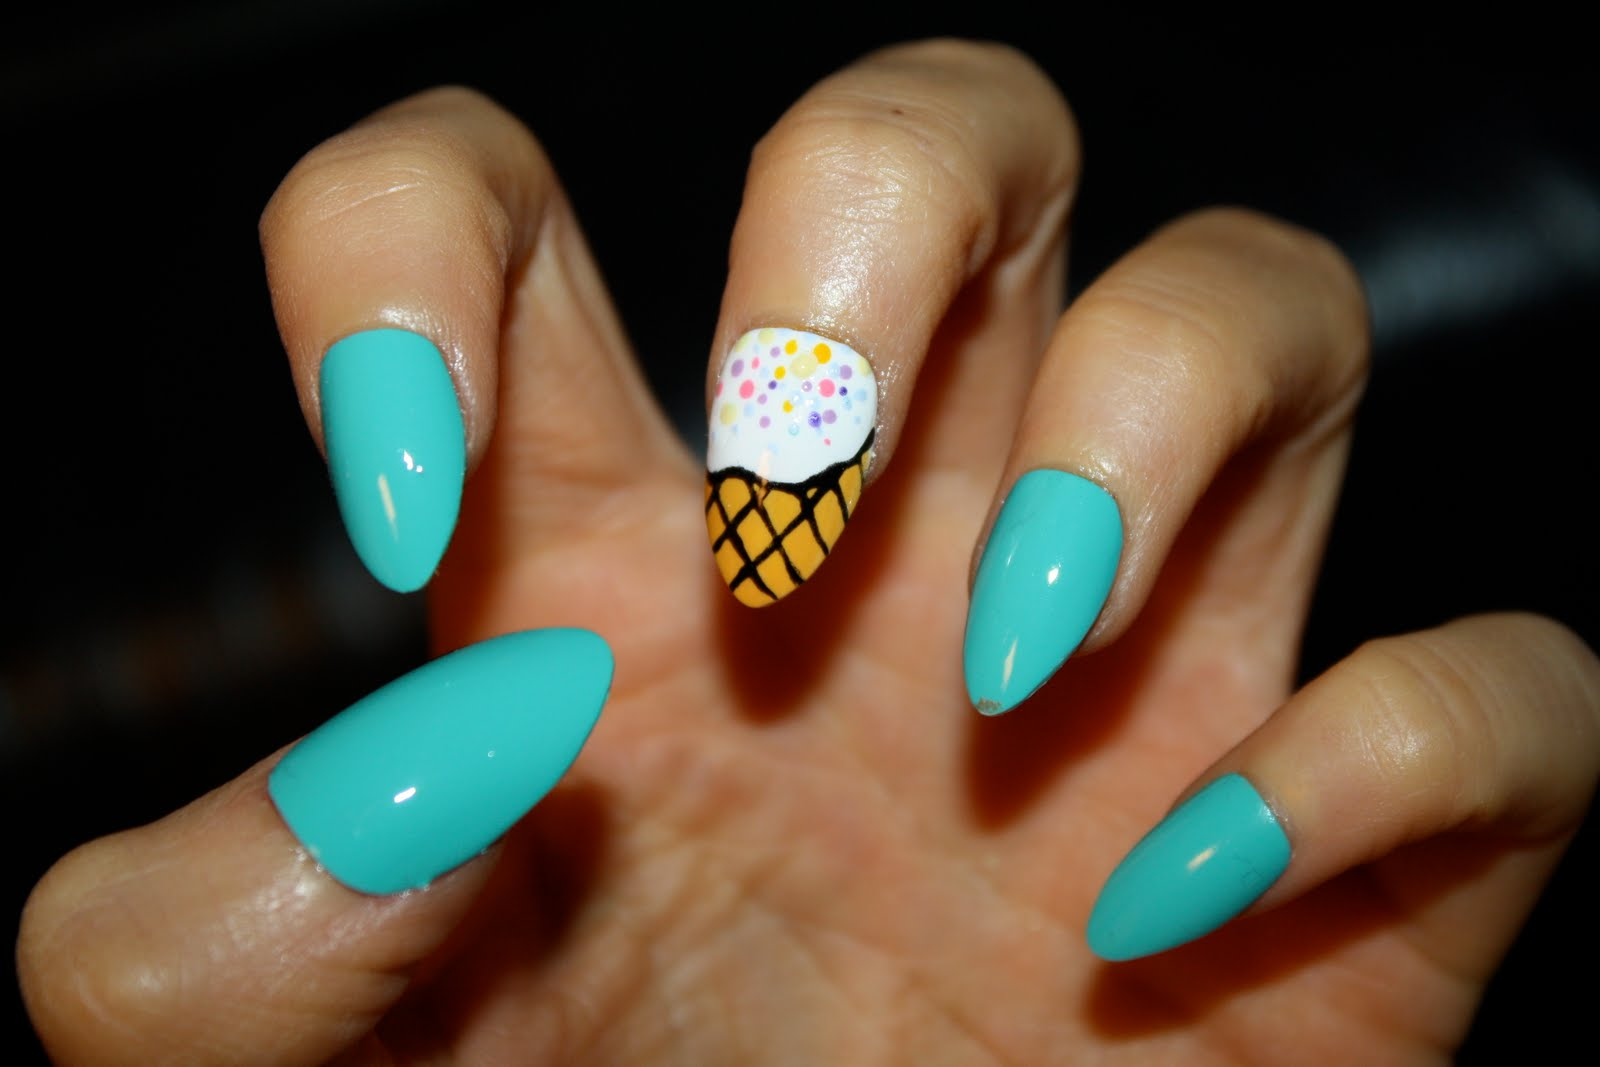  Ice Cream Shade   Funny manicure ideas for special people